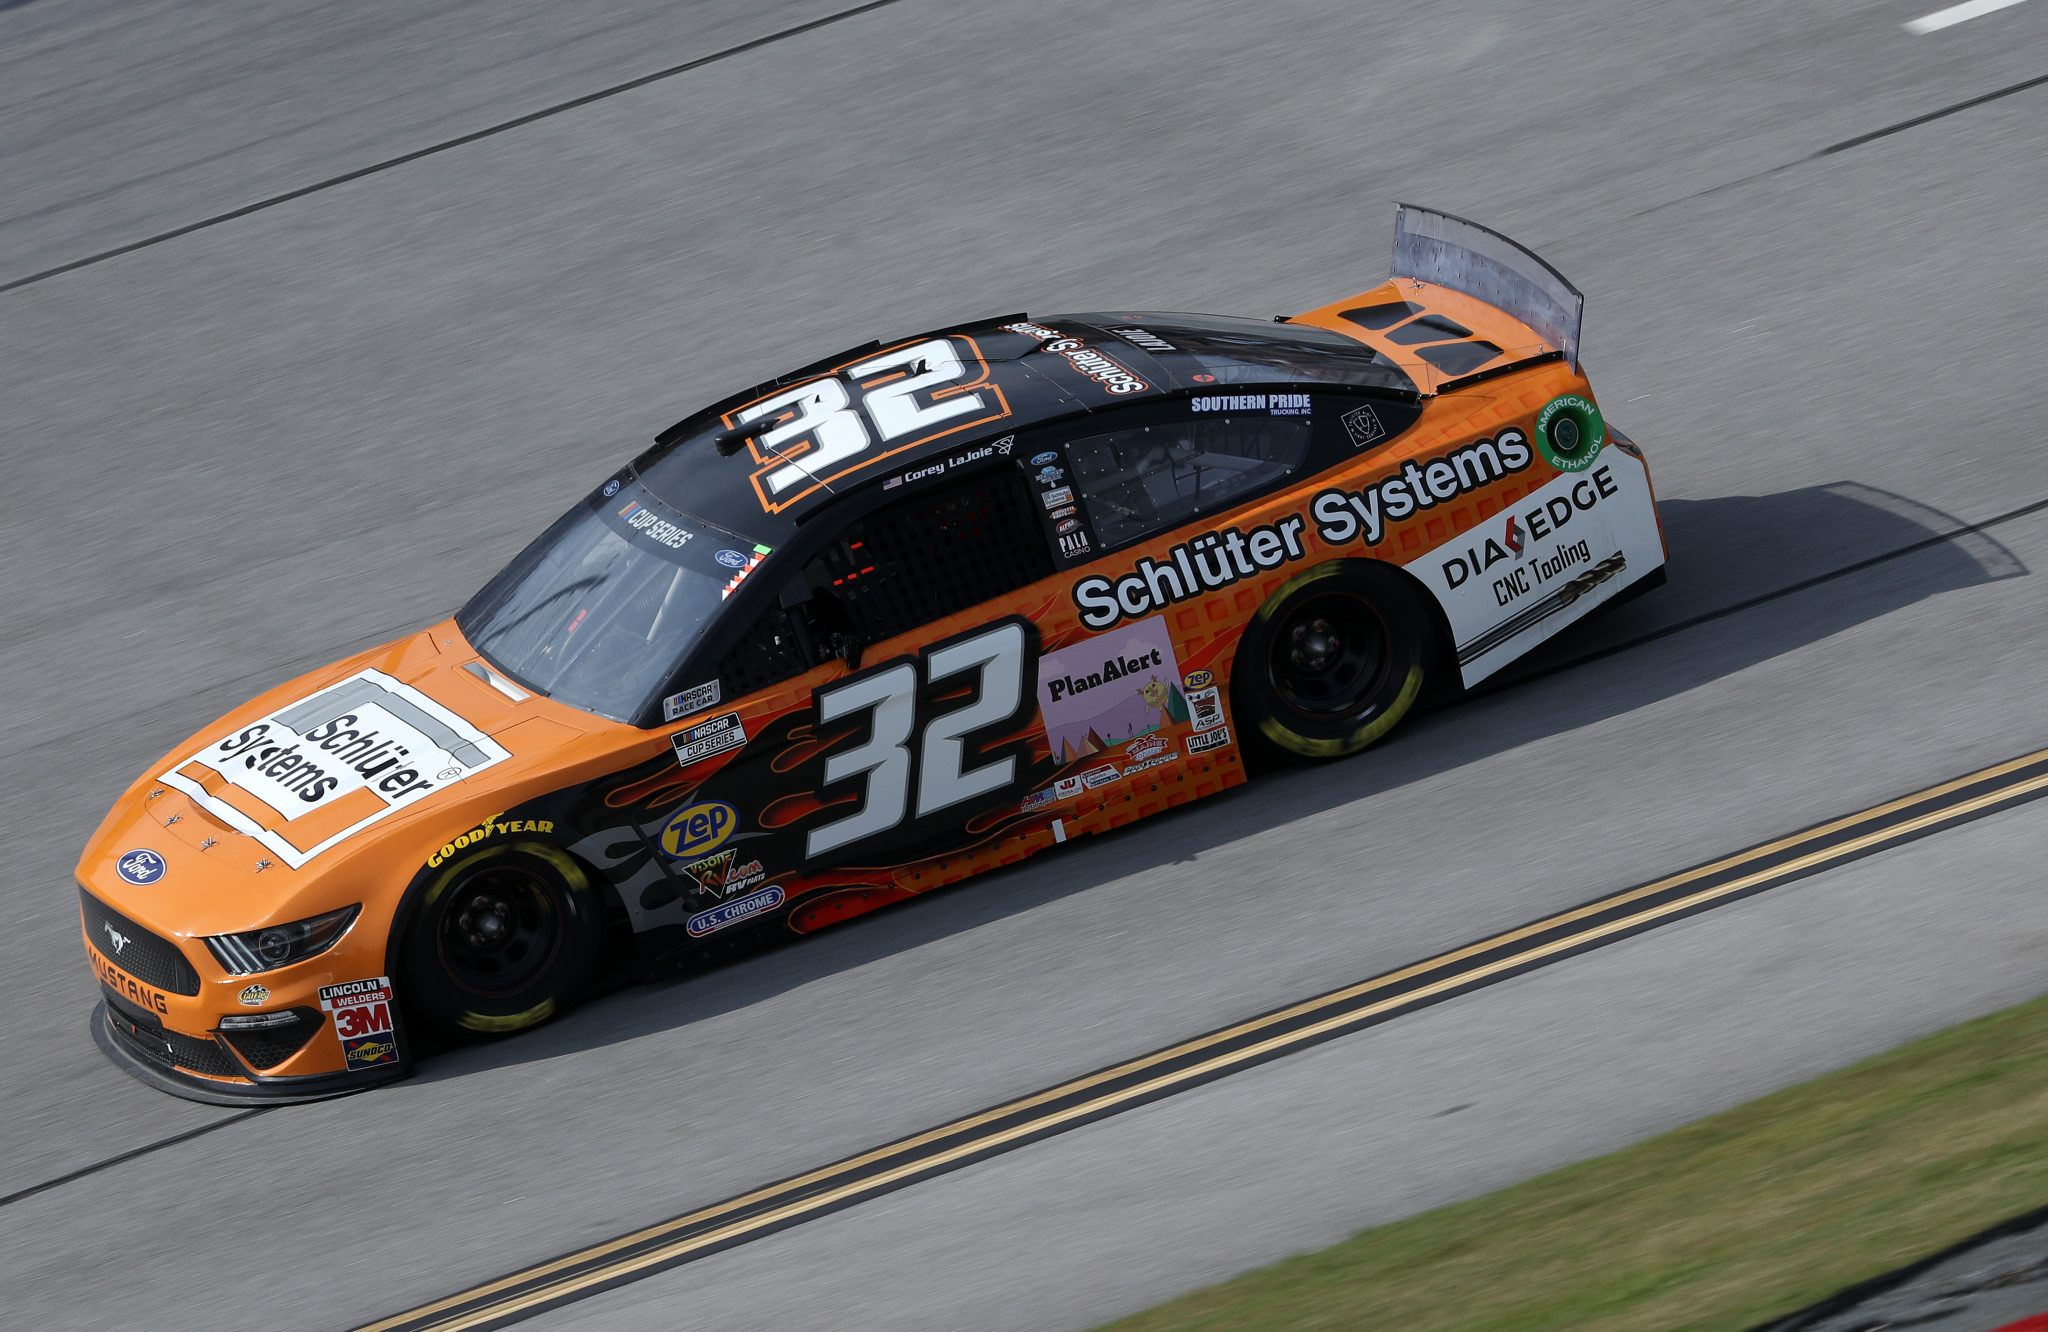 TALLADEGA, ALABAMA - OCTOBER 04: Corey LaJoie, driver of the #32 Schluter Systems Ford, drives during the NASCAR Cup Series YellaWood 500 at Talladega Superspeedway on October 04, 2020 in Talladega, Alabama. (Photo by Chris Graythen/Getty Images) | Getty Images